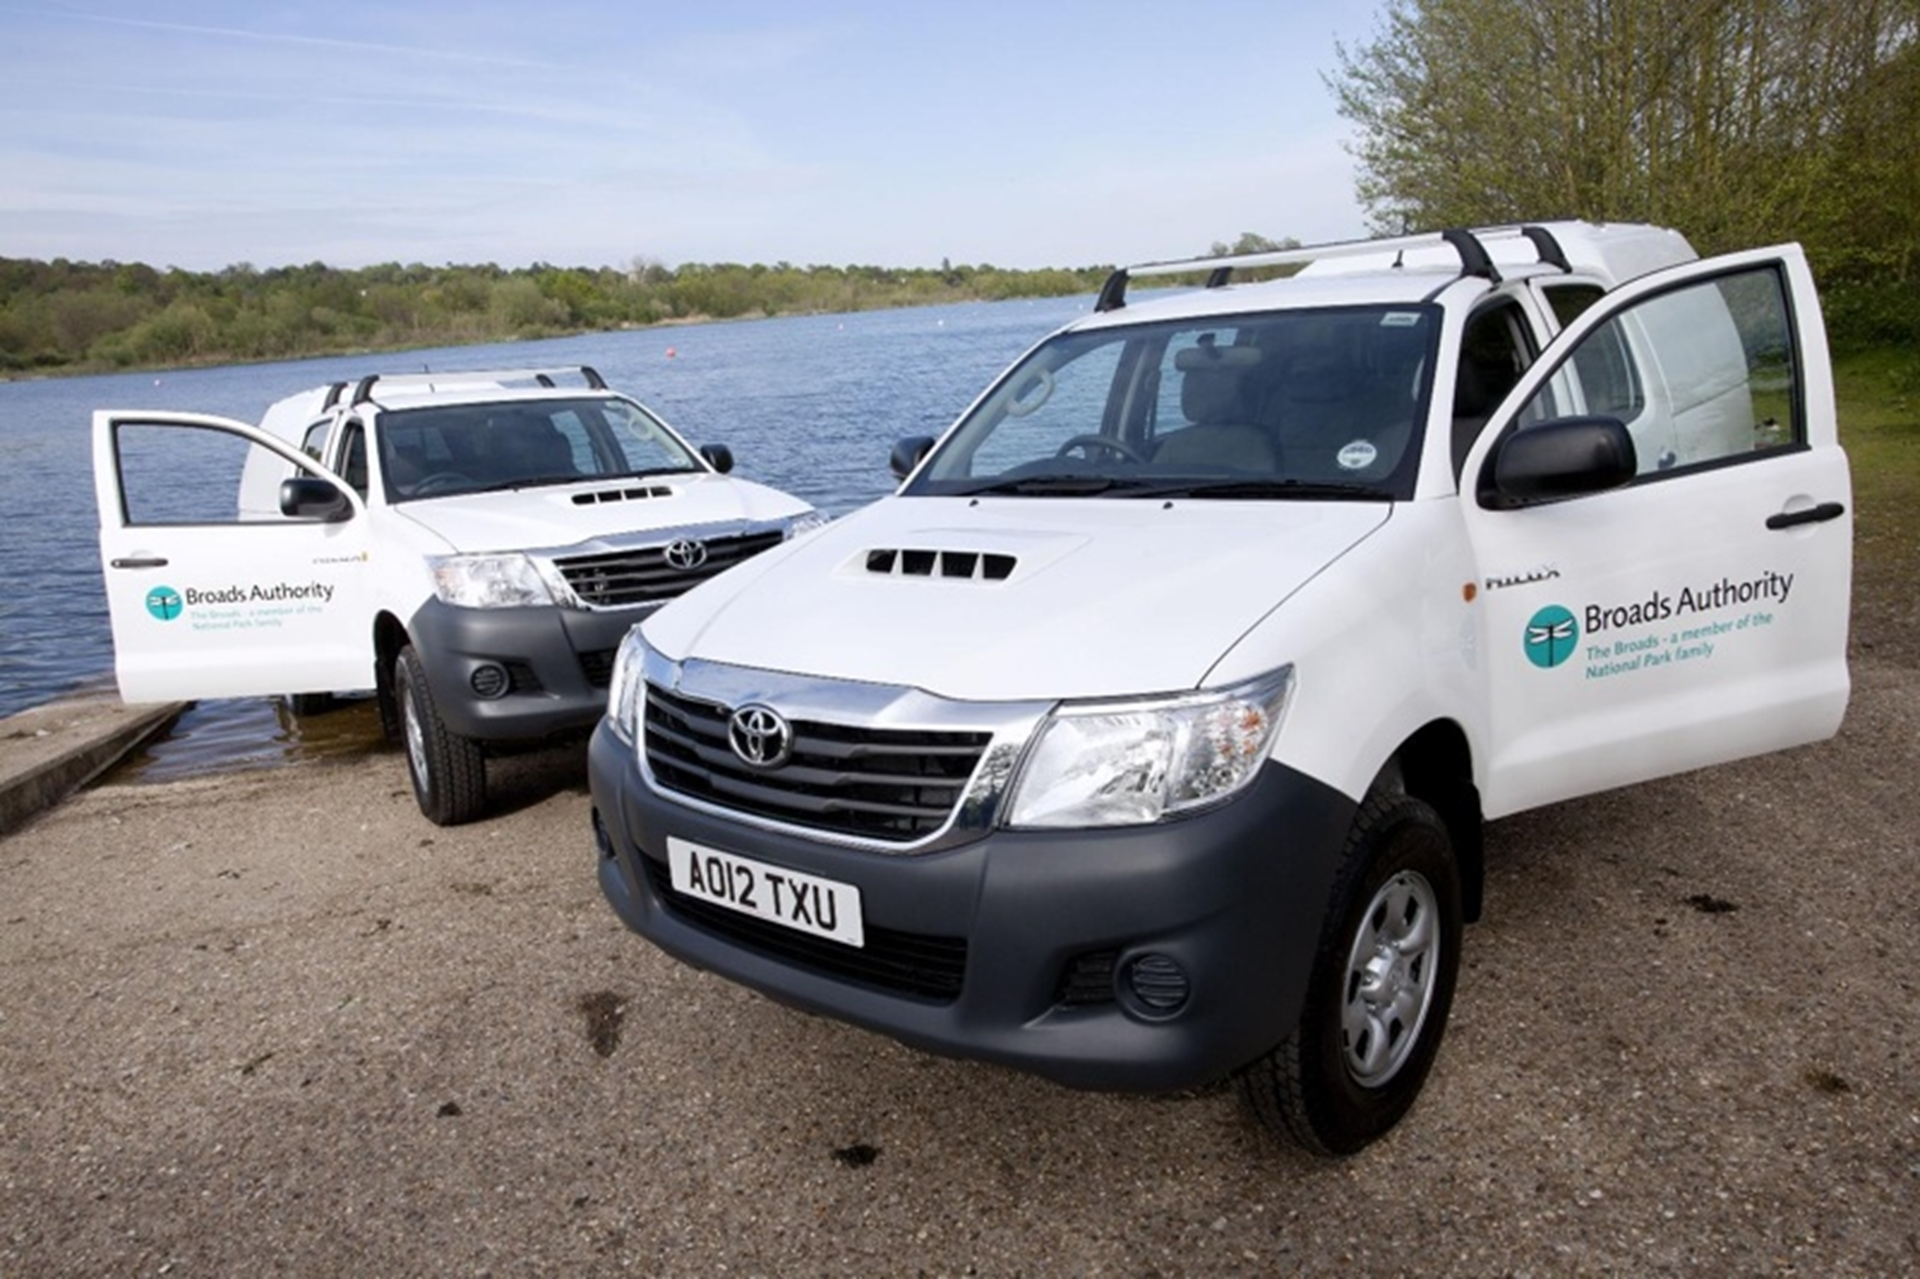 Broads Authority Hilux Fleet